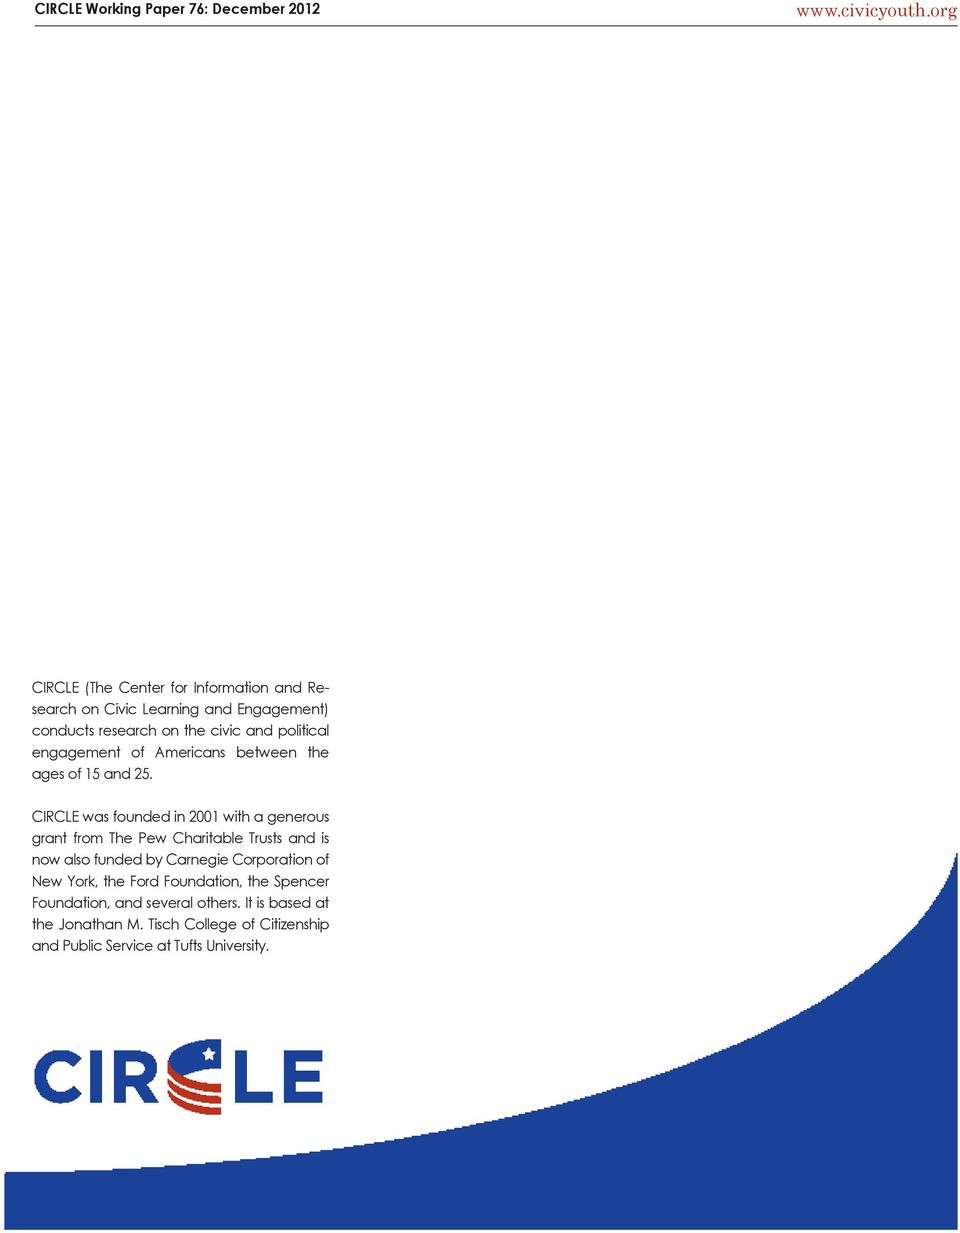 CIRCLE was founded in 2001 with a generous grant from The Pew Charitable Trusts and is now also funded by Carnegie